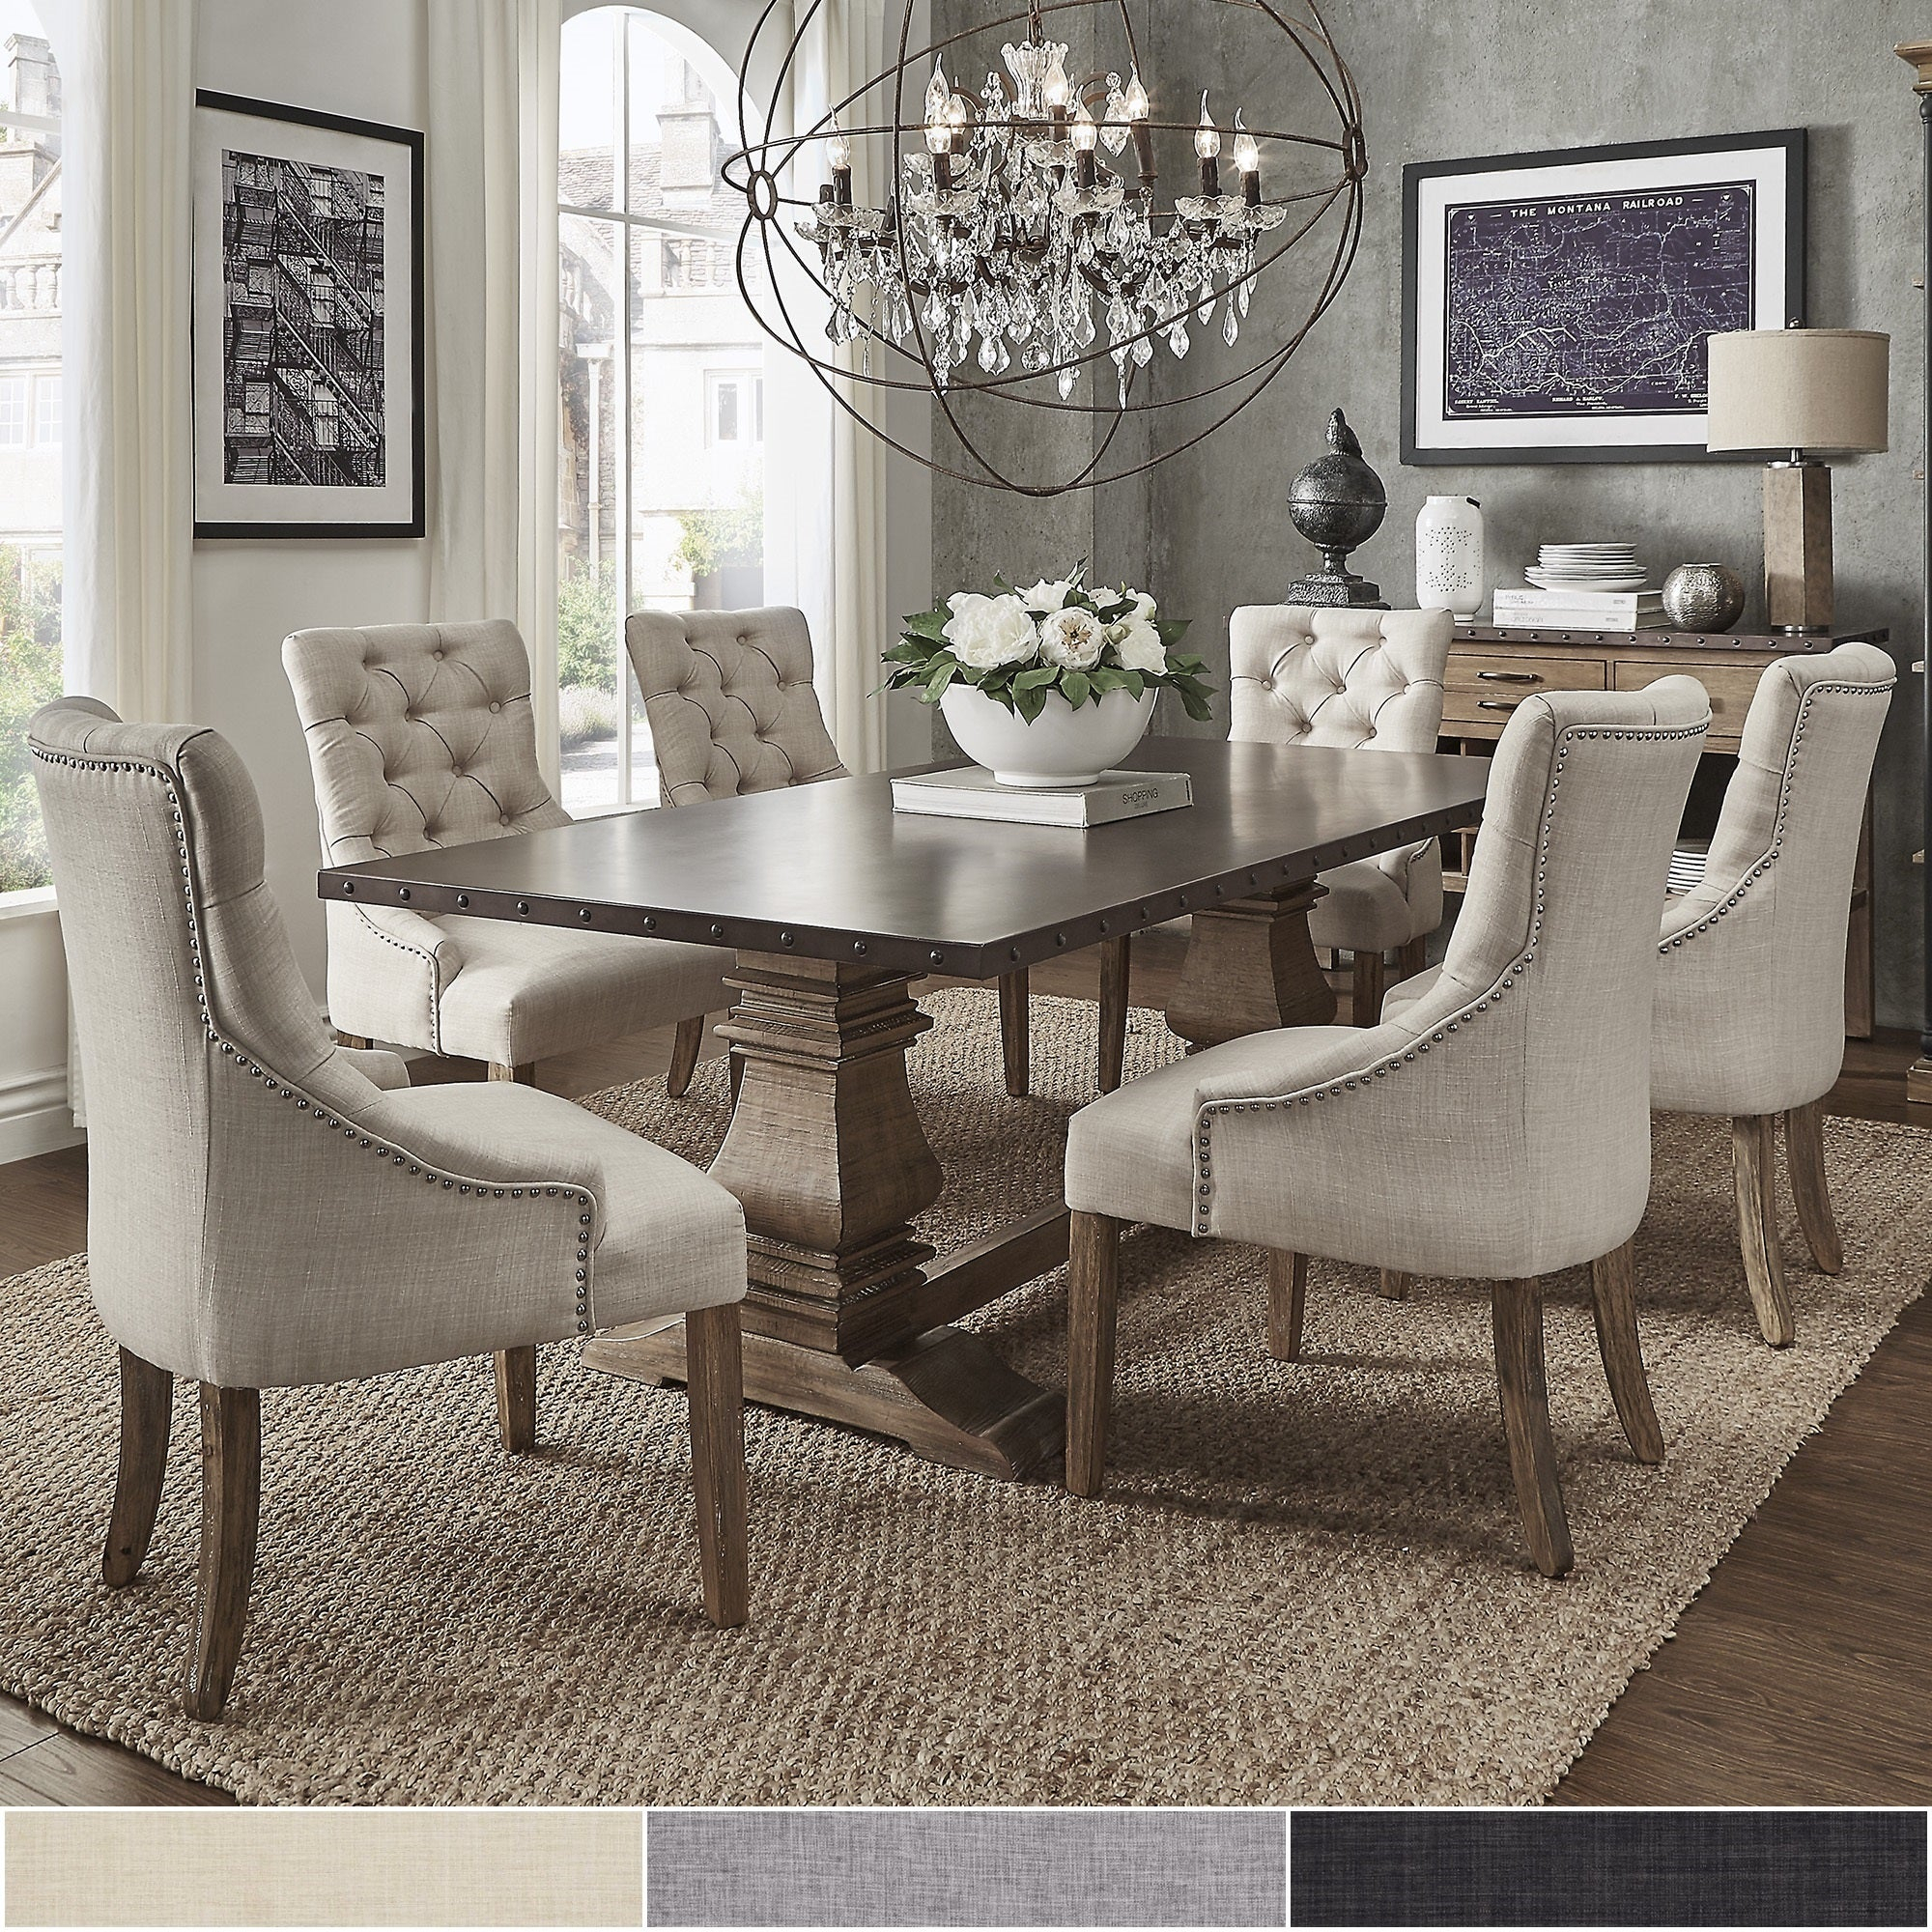 Recent Falmer 3 Piece Solid Wood Dining Sets For Buy Farmhouse Kitchen & Dining Room Sets Online At Overstock (View 6 of 20)